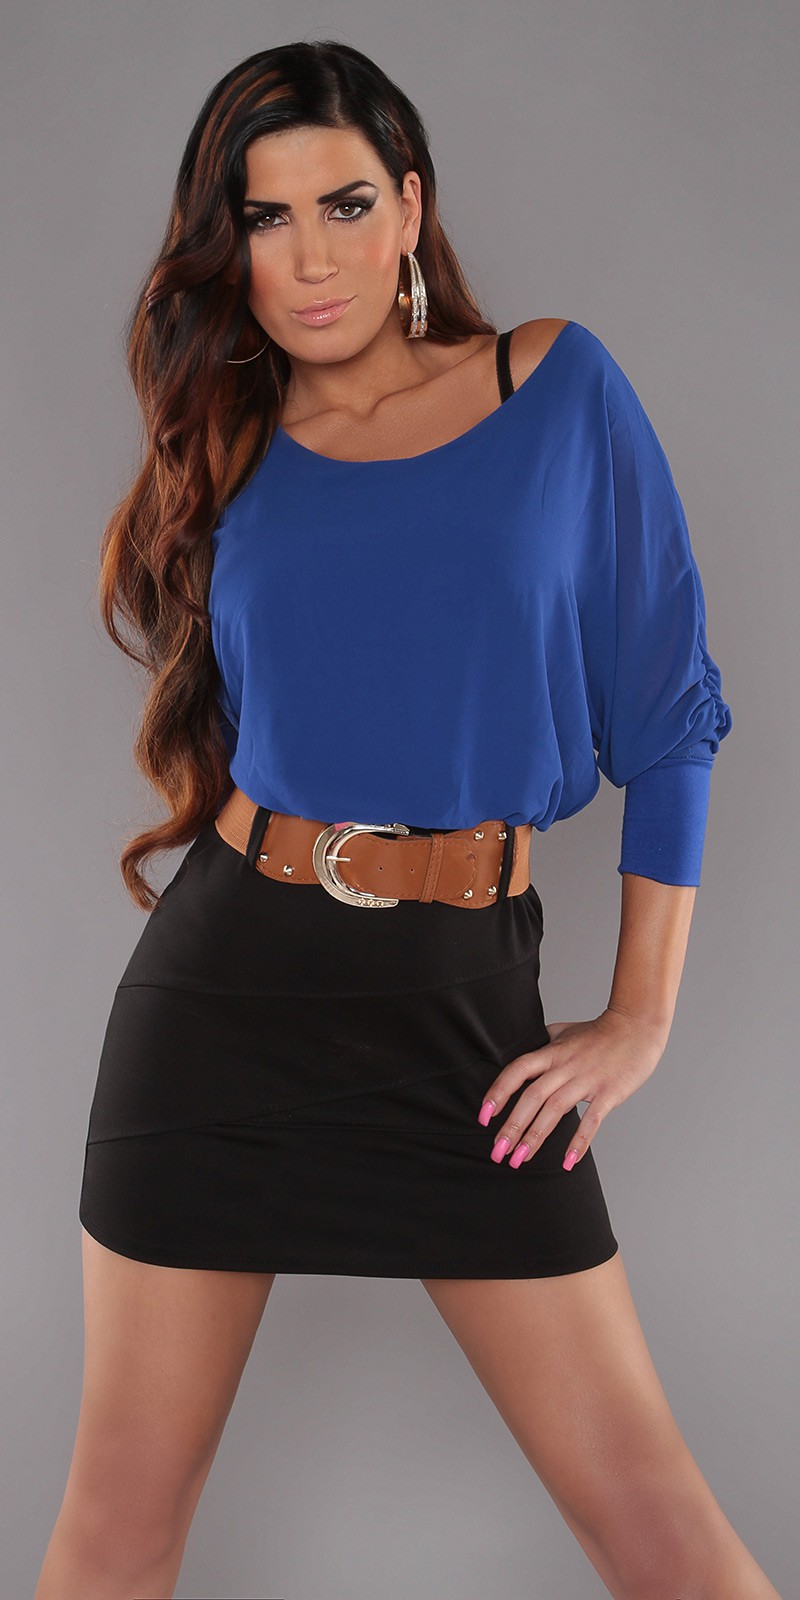 Blue Top Black Skirt Off-Shoulder Belted Dress